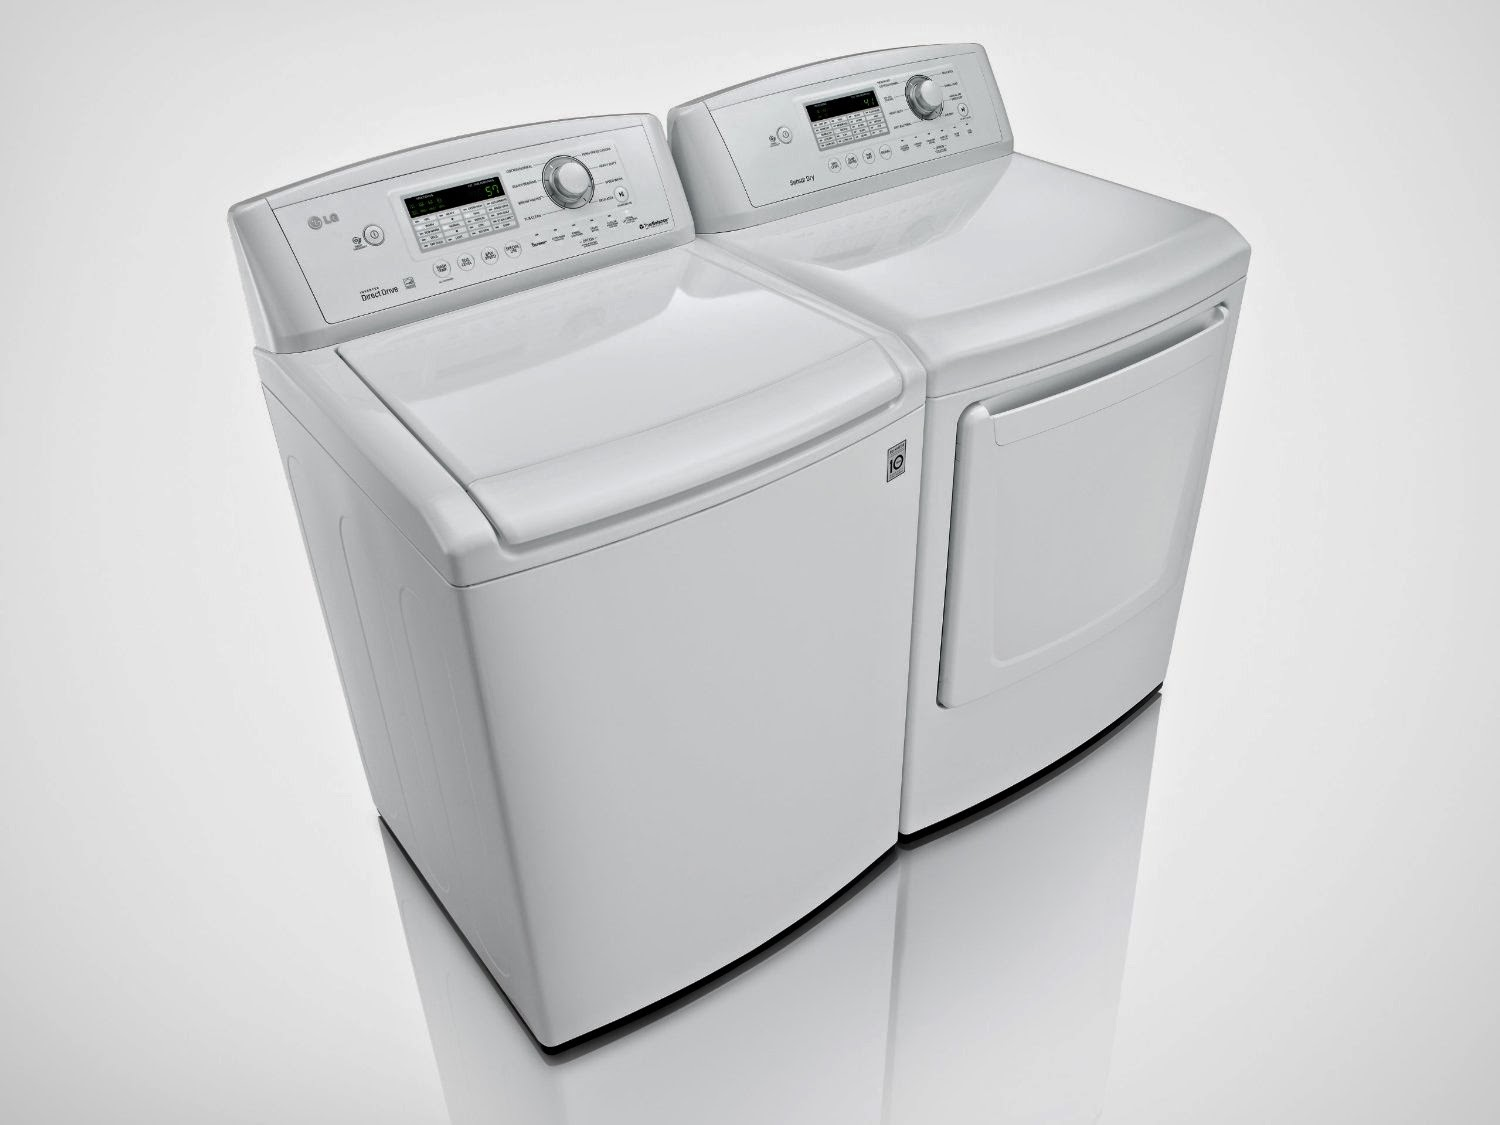 lg top load laundry pair with powerful staincare technology